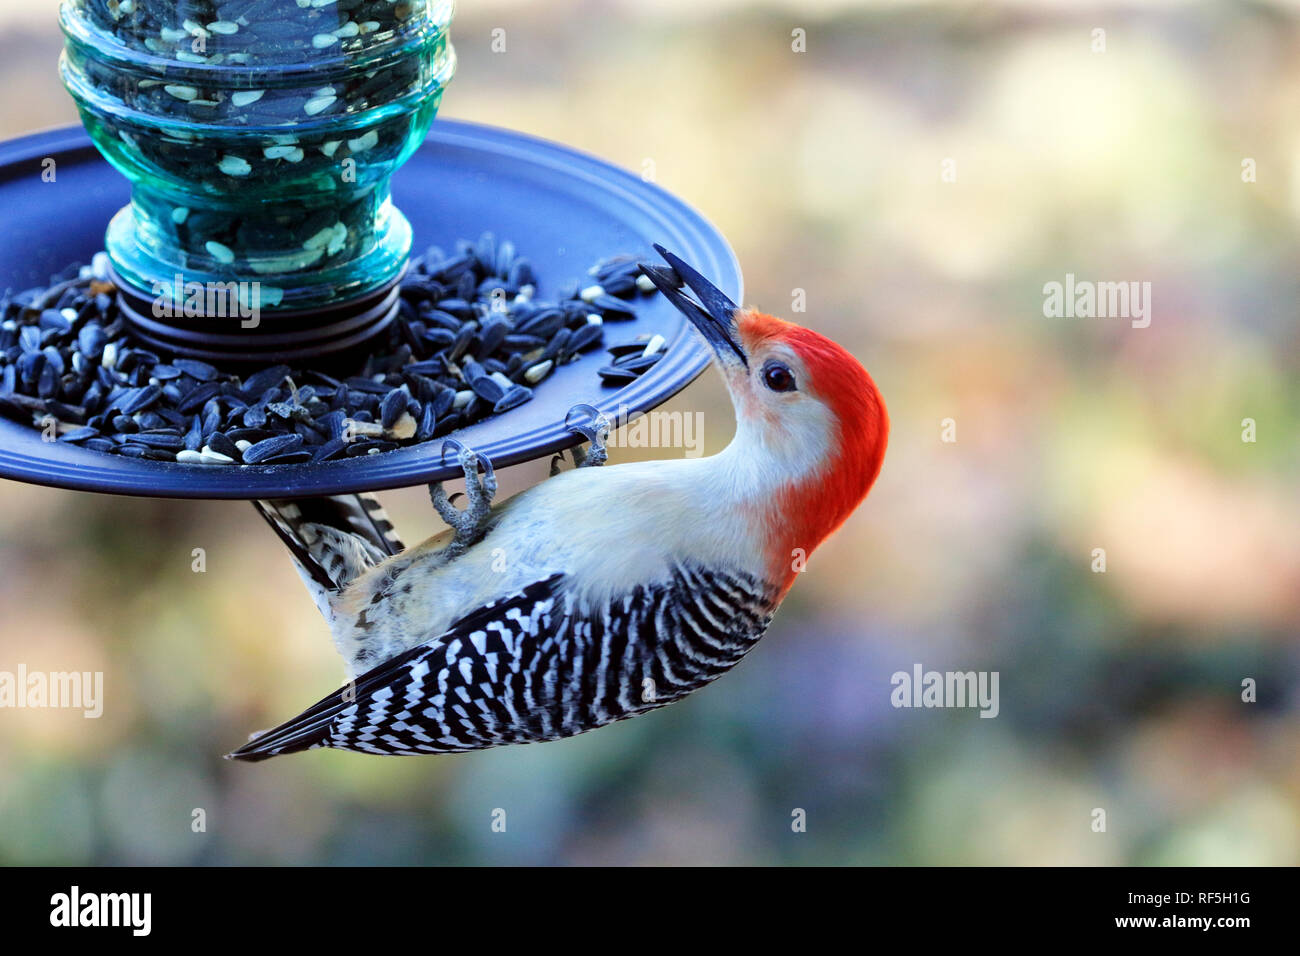 Red-bellied Woodpecker, Melanerpes carolinus, eating at a bird feeder - Stock Image